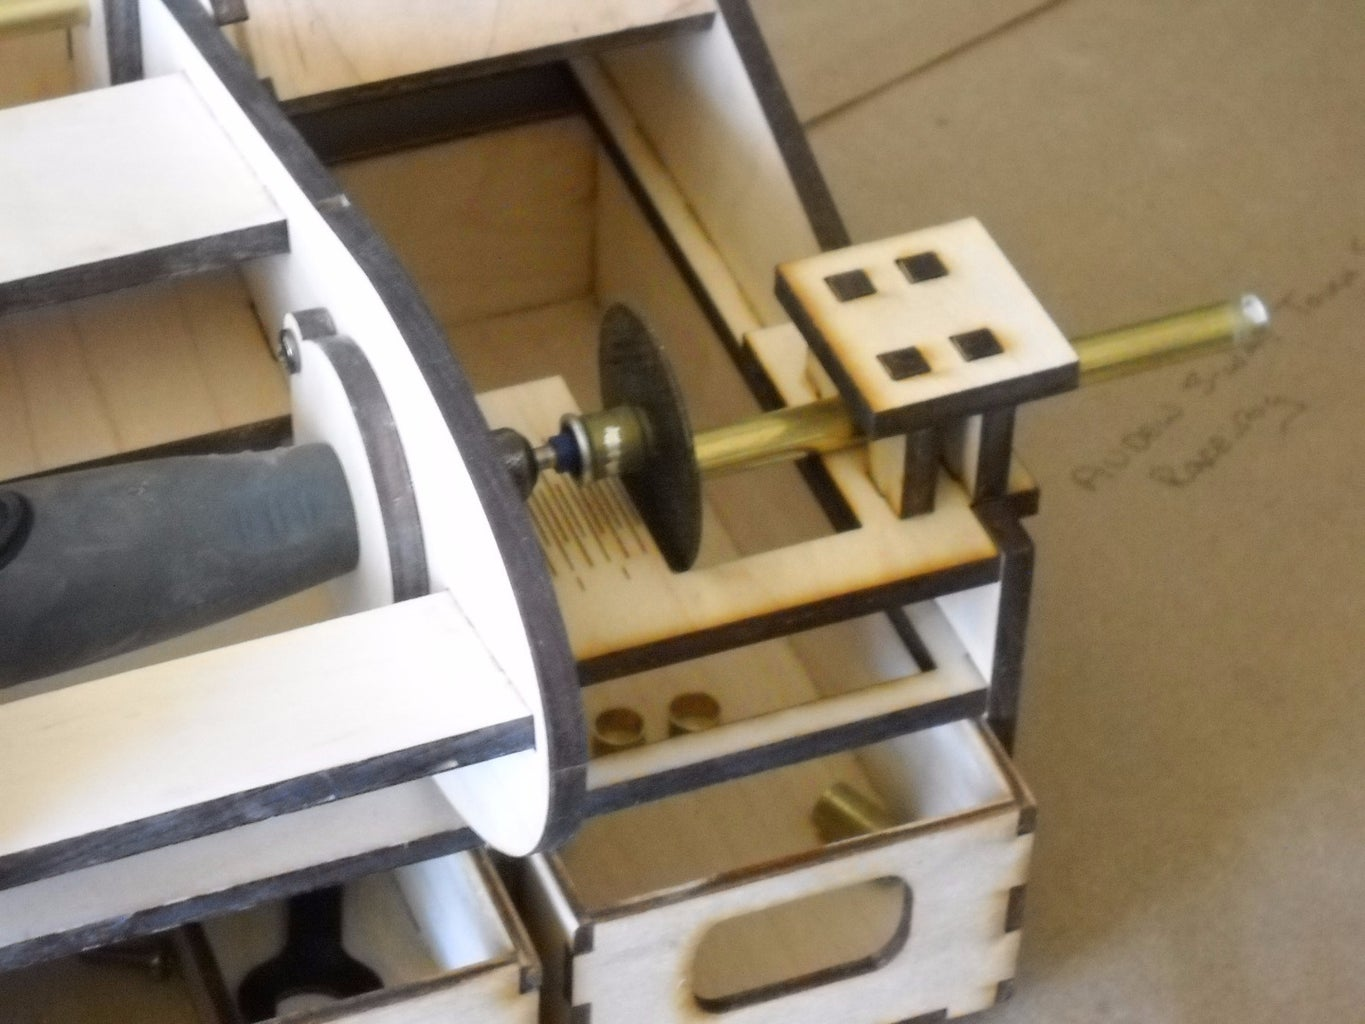 Assemble the Cutting Table